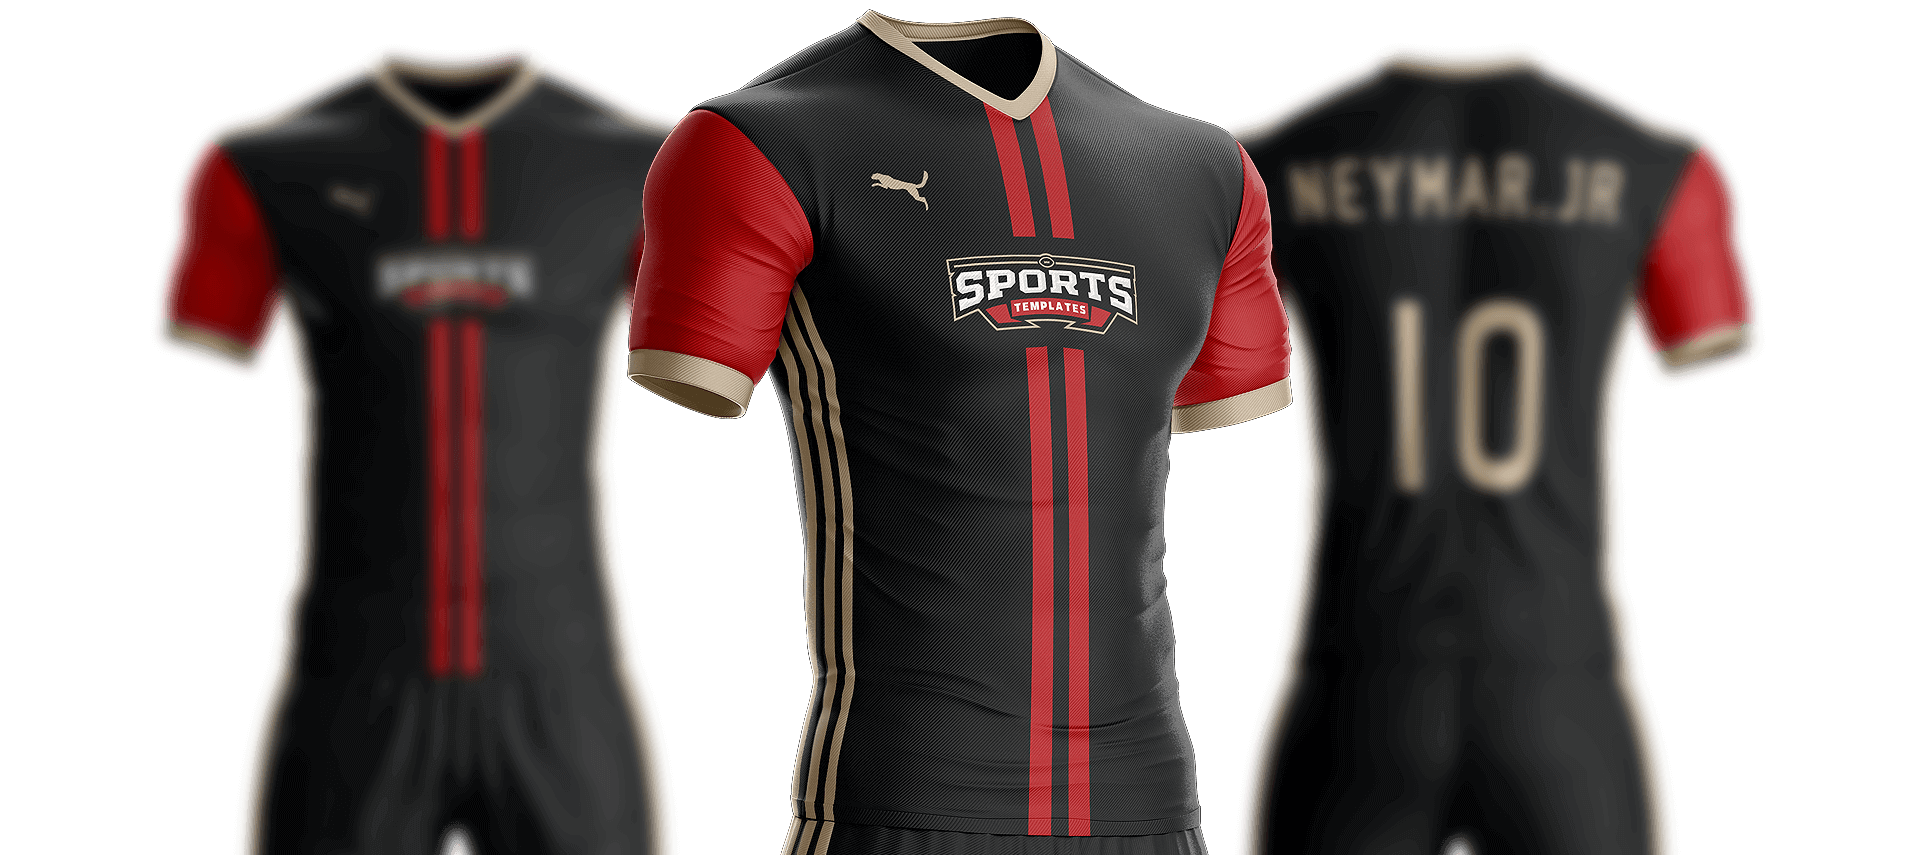 Sports jersey png. Goal soccer kit template